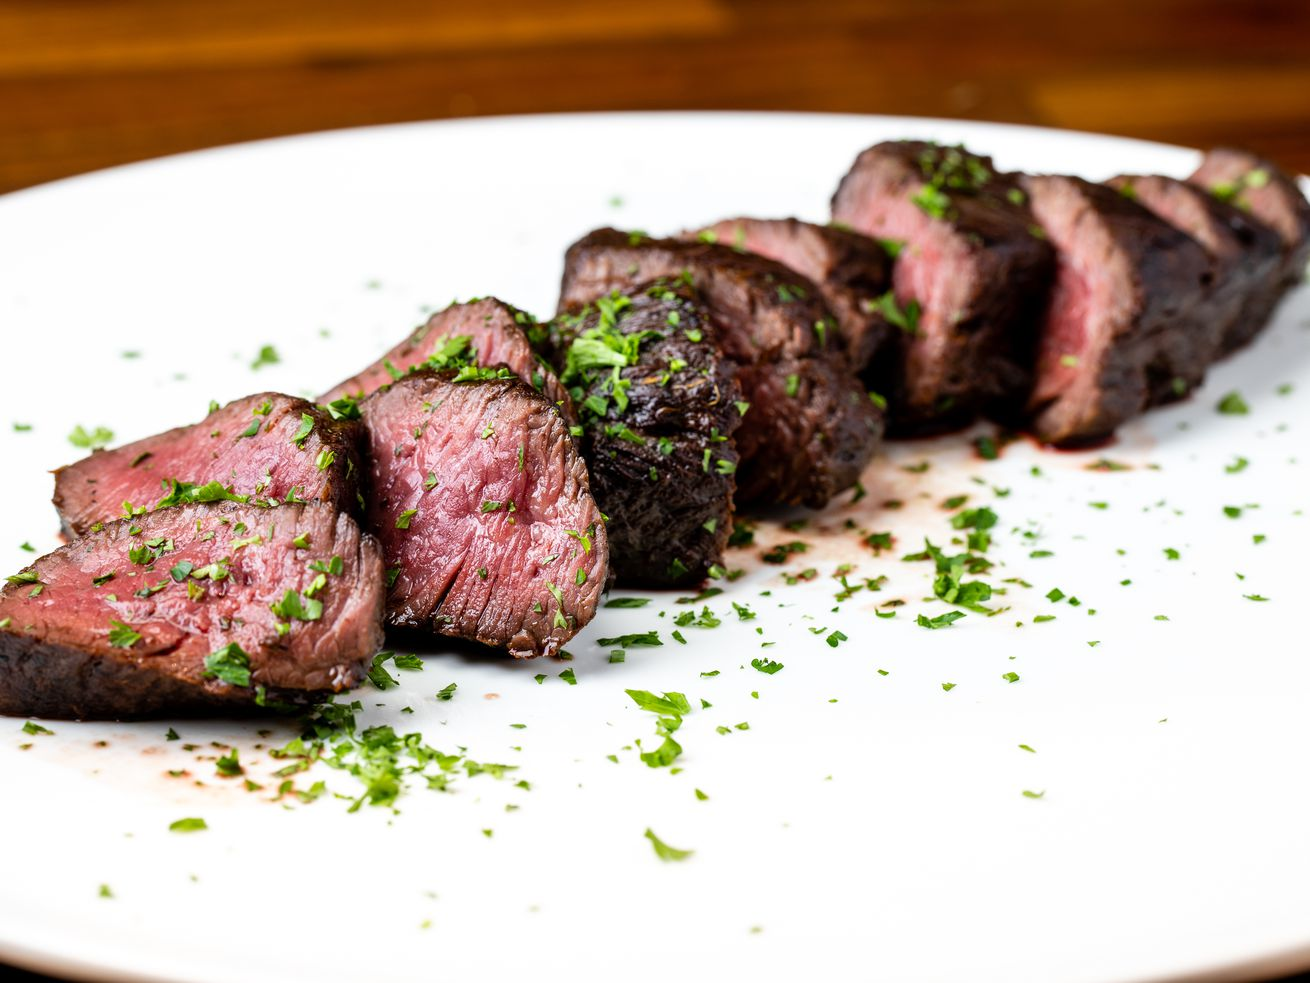 About Last Knife's beef tenderloin.